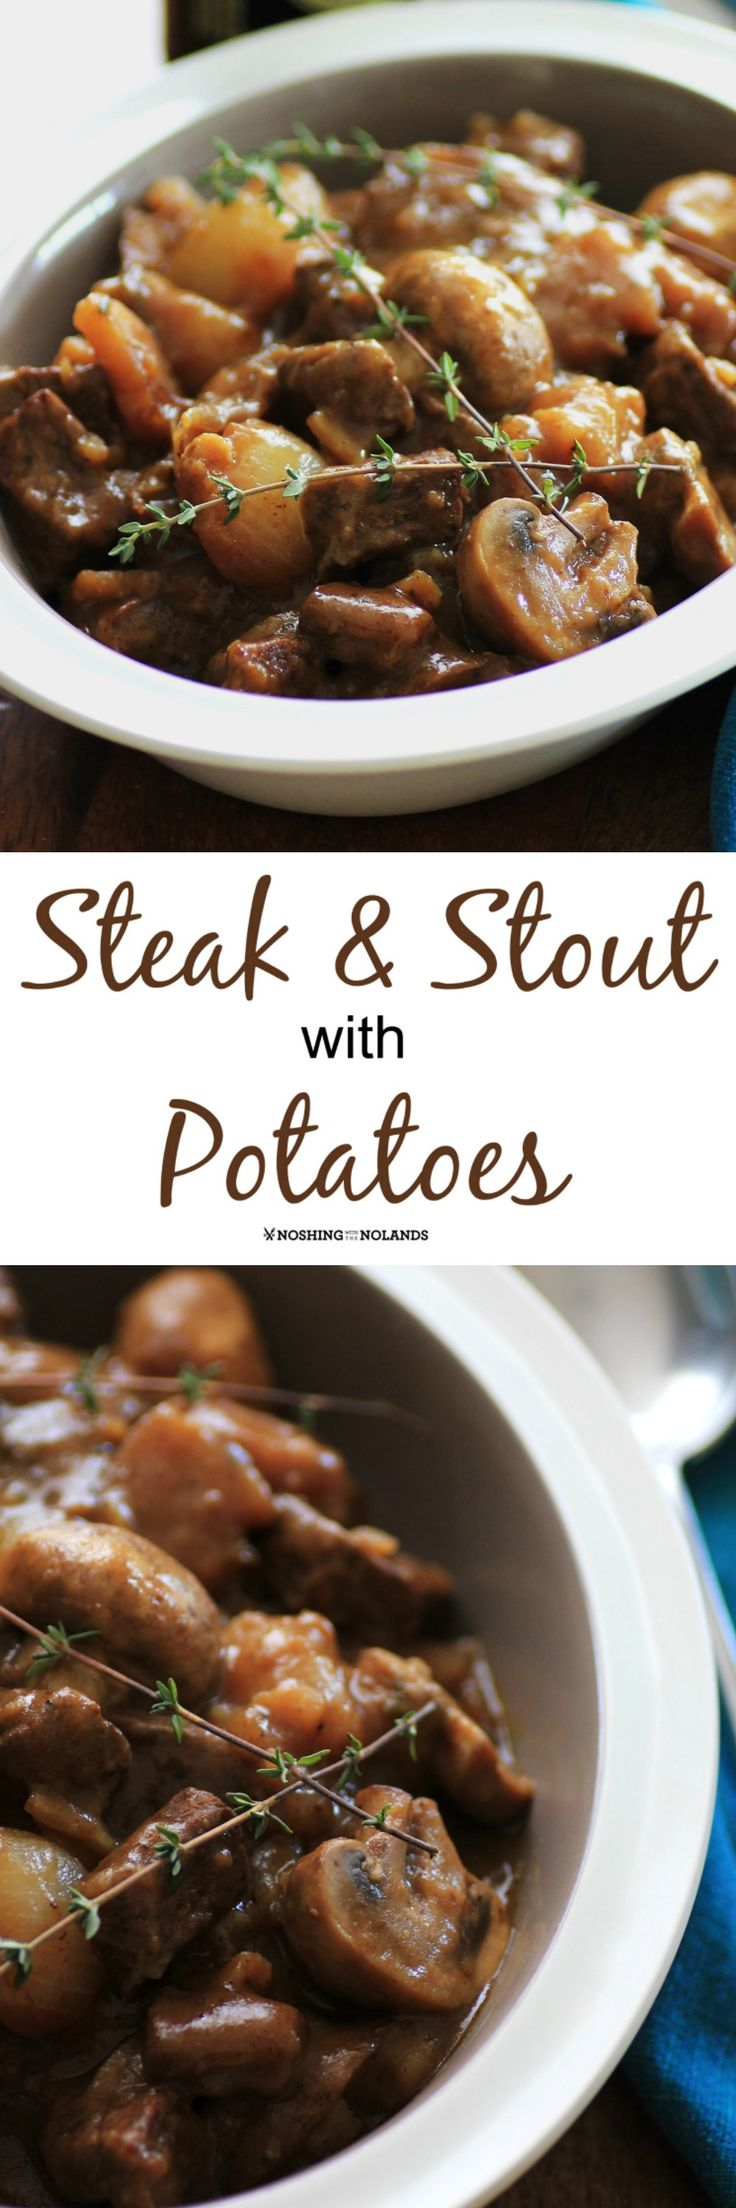 Steak and Stout with Potatoes by Noshing With The Nolands is a rich and hearty dish that you will want to serve for St. Patrick's Day and year round!